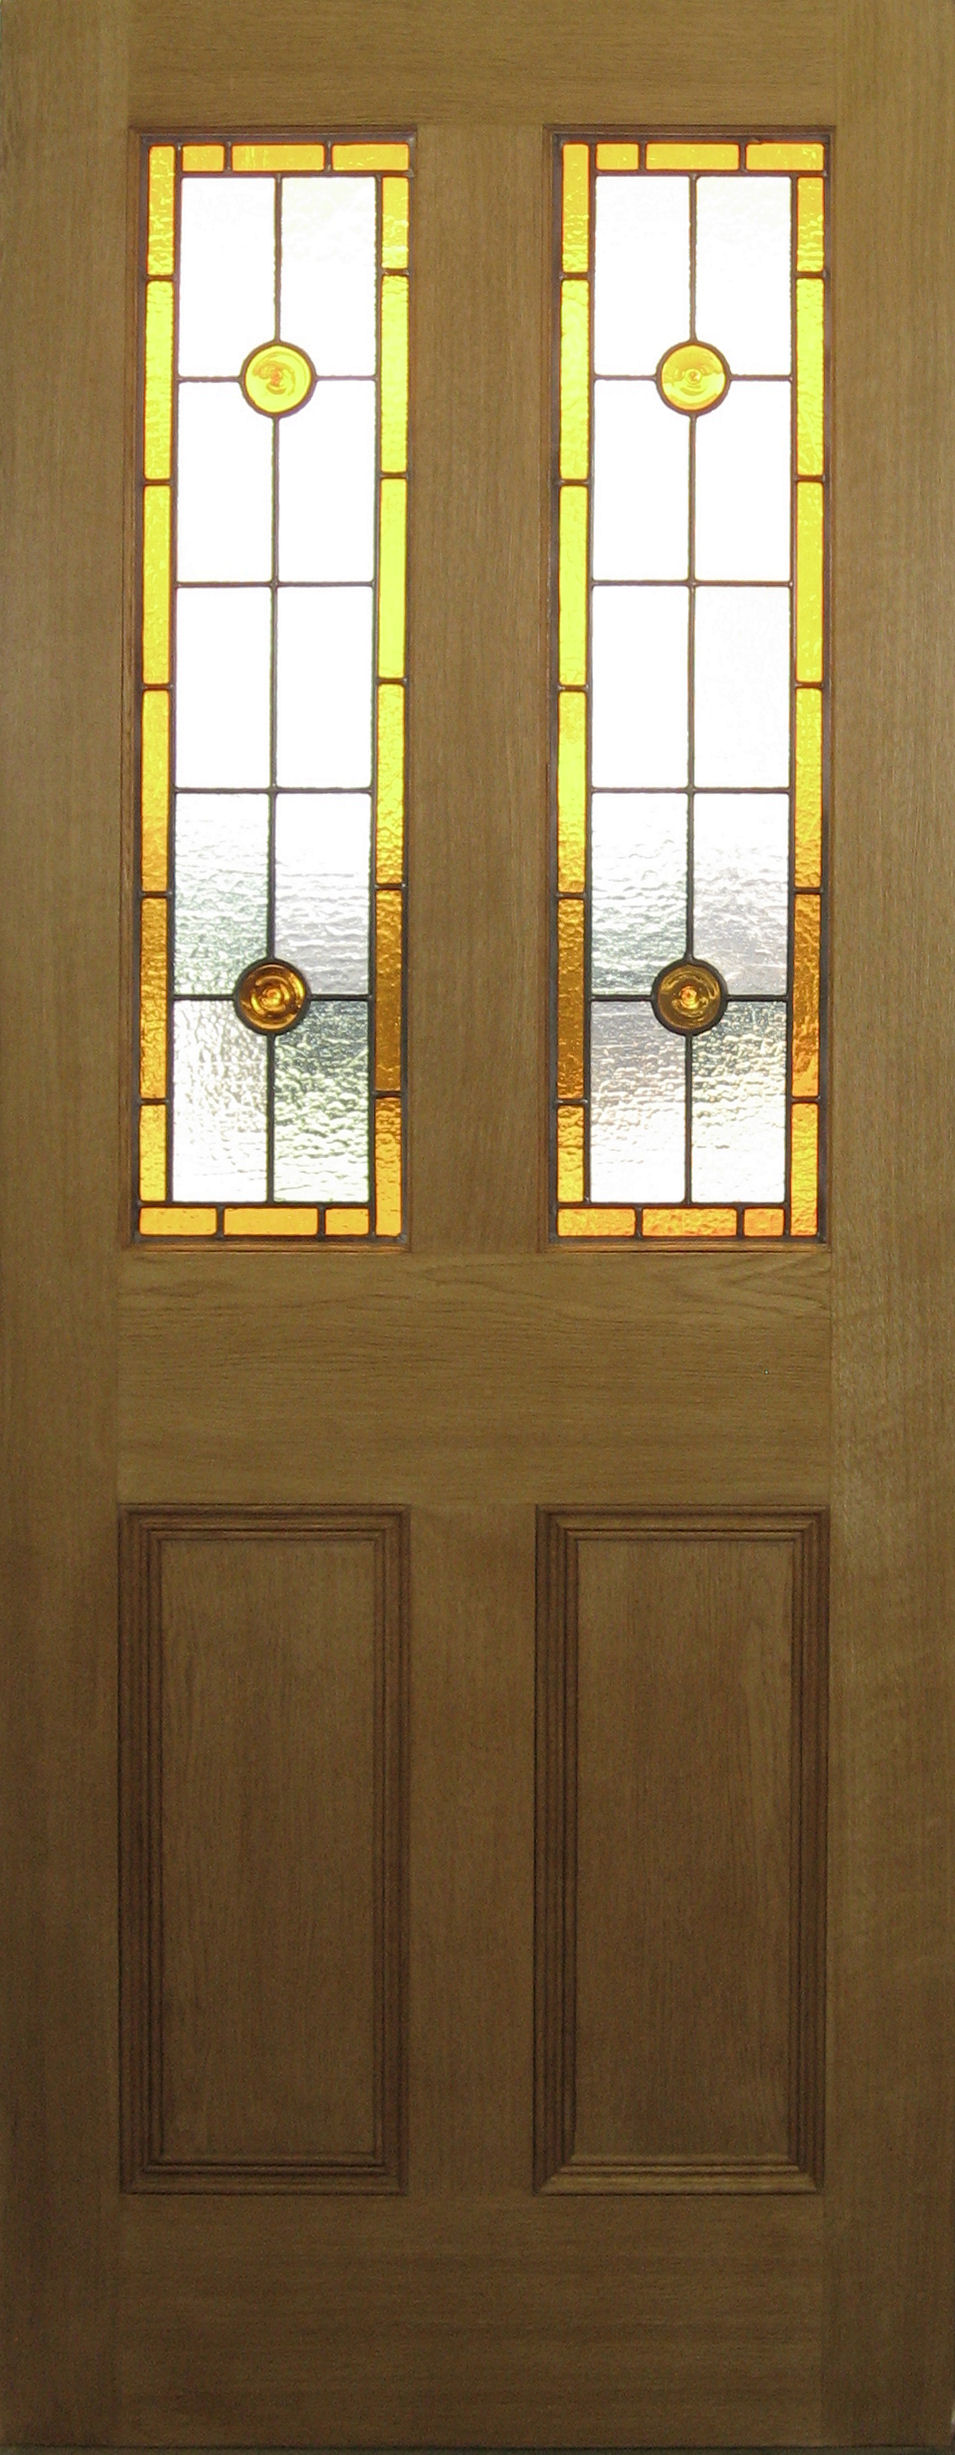 Period interior panels doors and stained glass doors available pd333 option 2 rubansaba